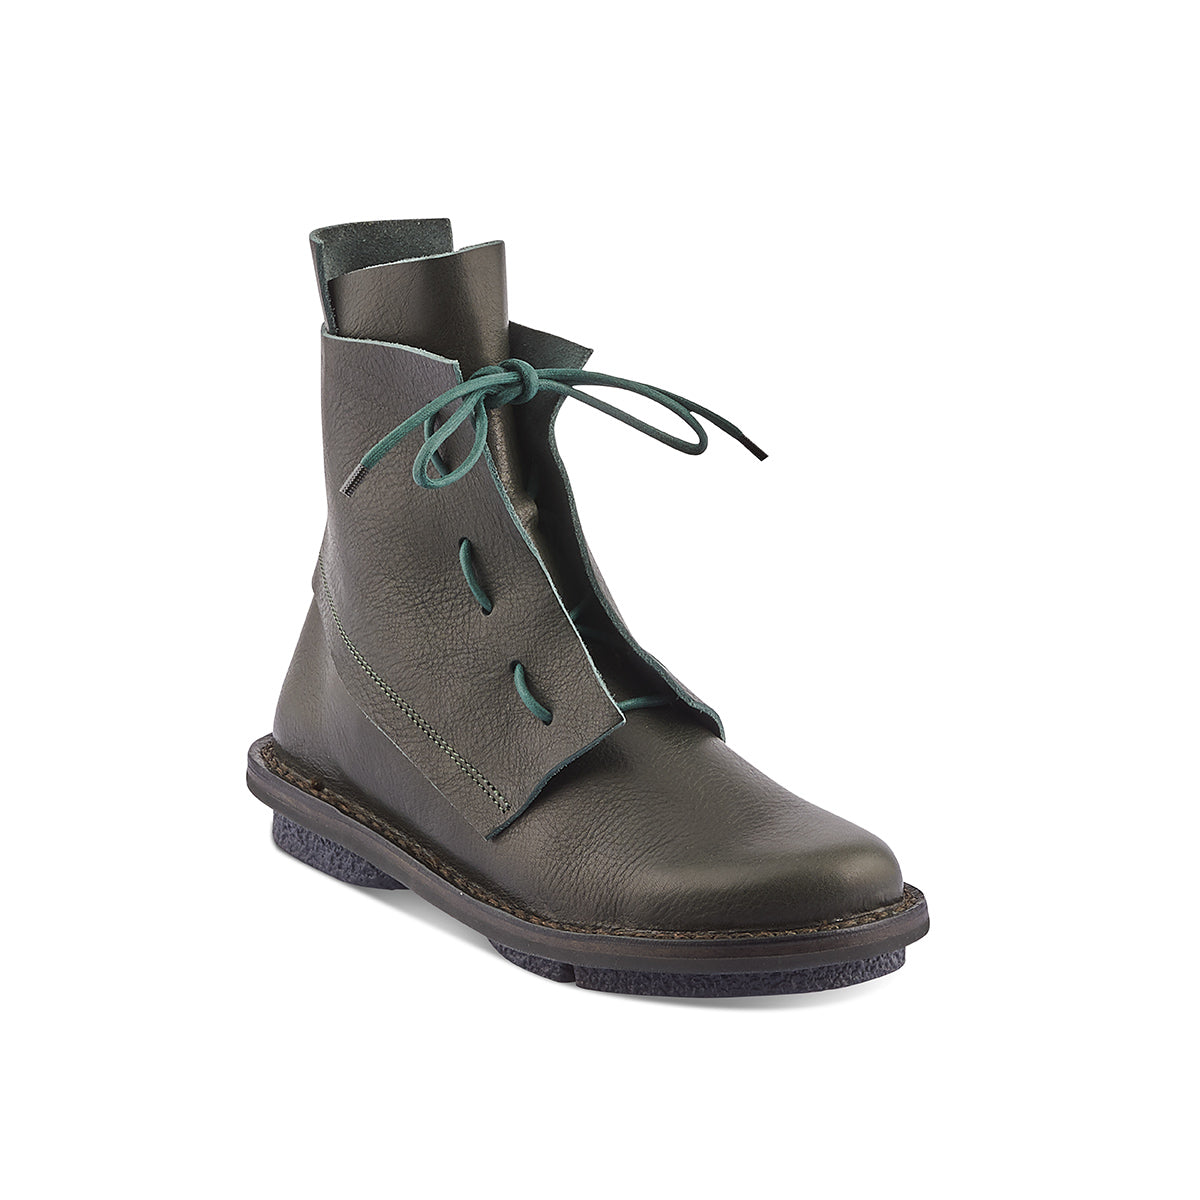 In a gorgeous forest green leather, Solid is a roomy winter boot with playful lacing and a graphic silhouette. The 'closed' rubber sole is ideal for any wintery conditions and Trippen's trademark cork and suede footbed ensures support and comfort anywhere you tread.